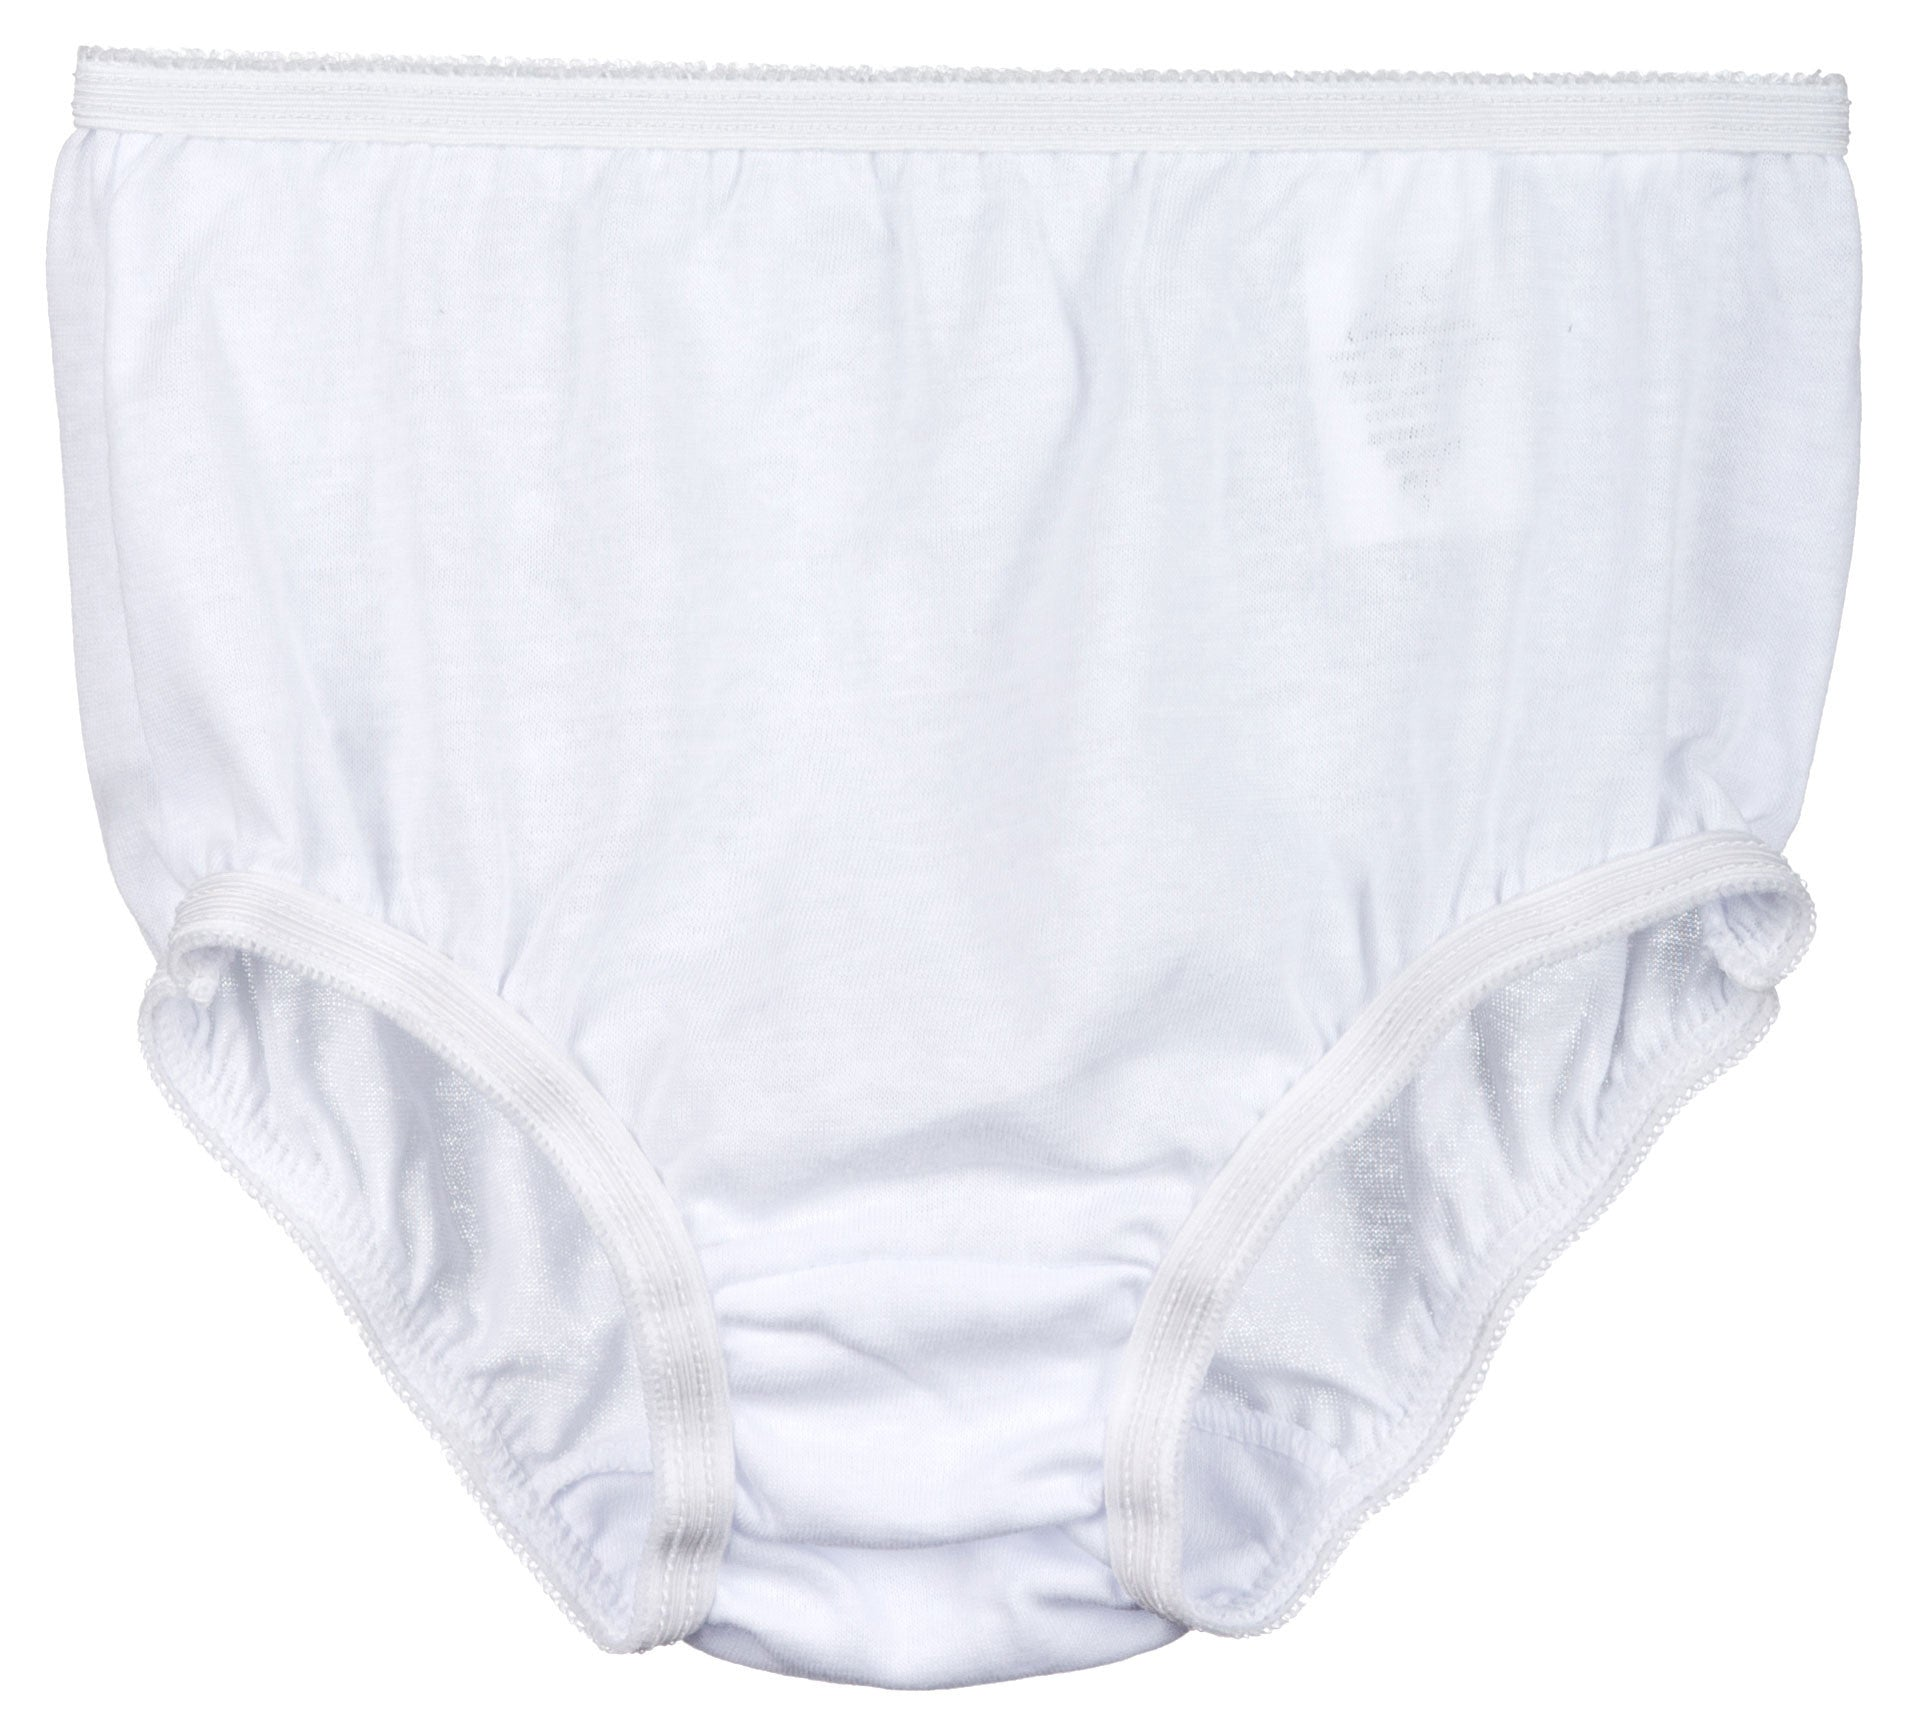 Little Girls White Knit Brief Panties, (2-14)